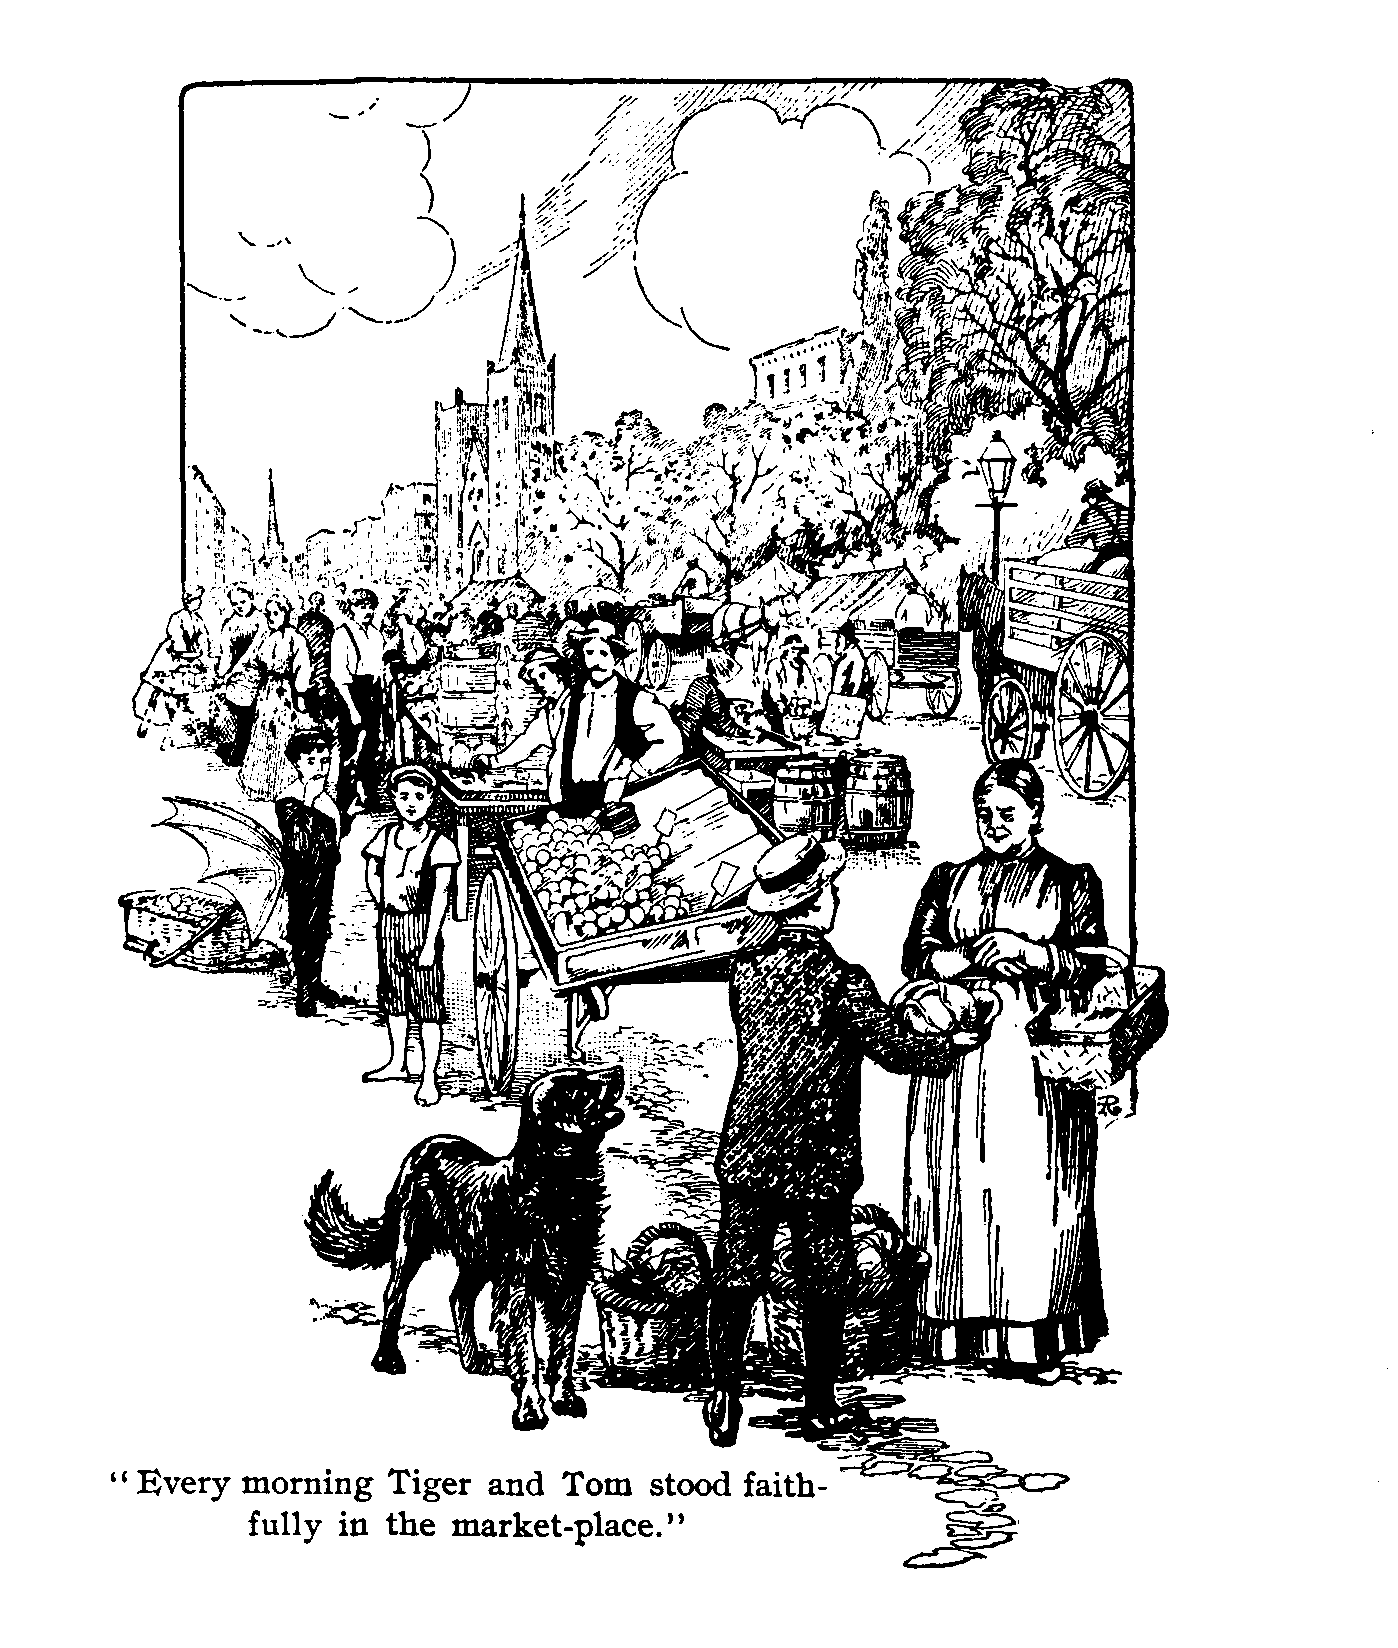 [Illustration: Every morning Tiger and Tom stood faithfully in the  market-place.